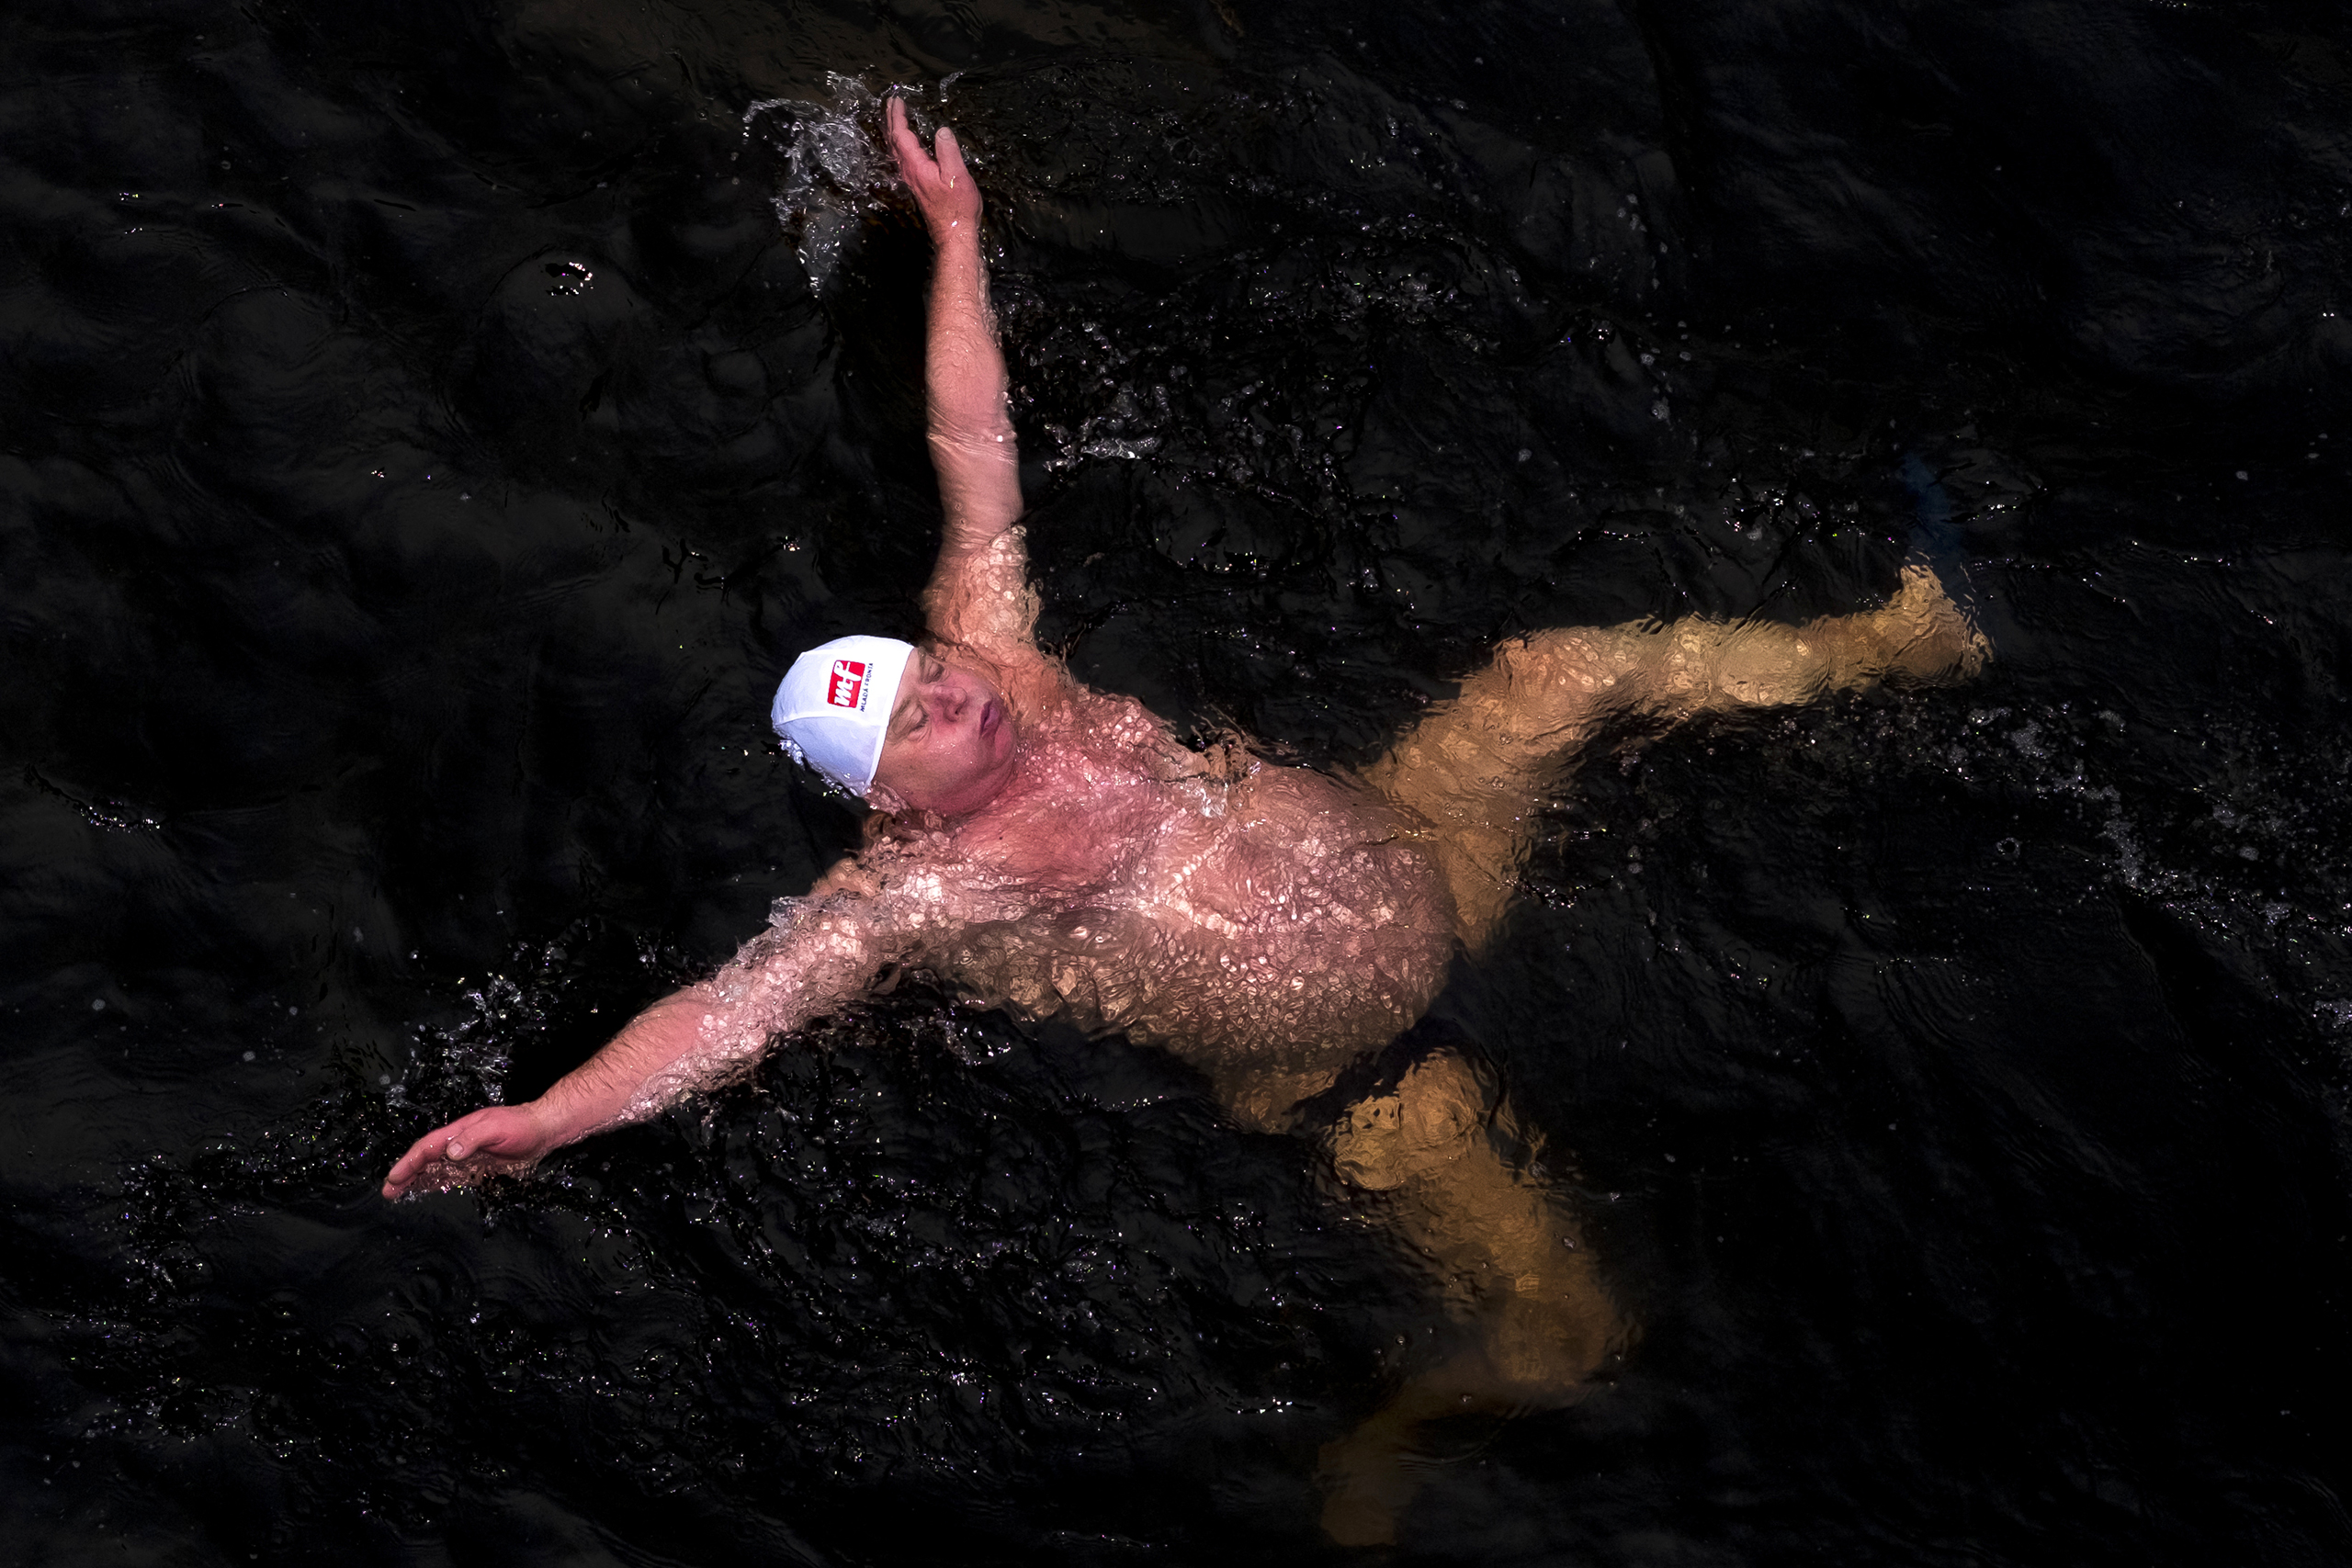 A swimmer takes part in a Boxing Day cold water swim in Prague's Vltava River on Dec. 26 2016.